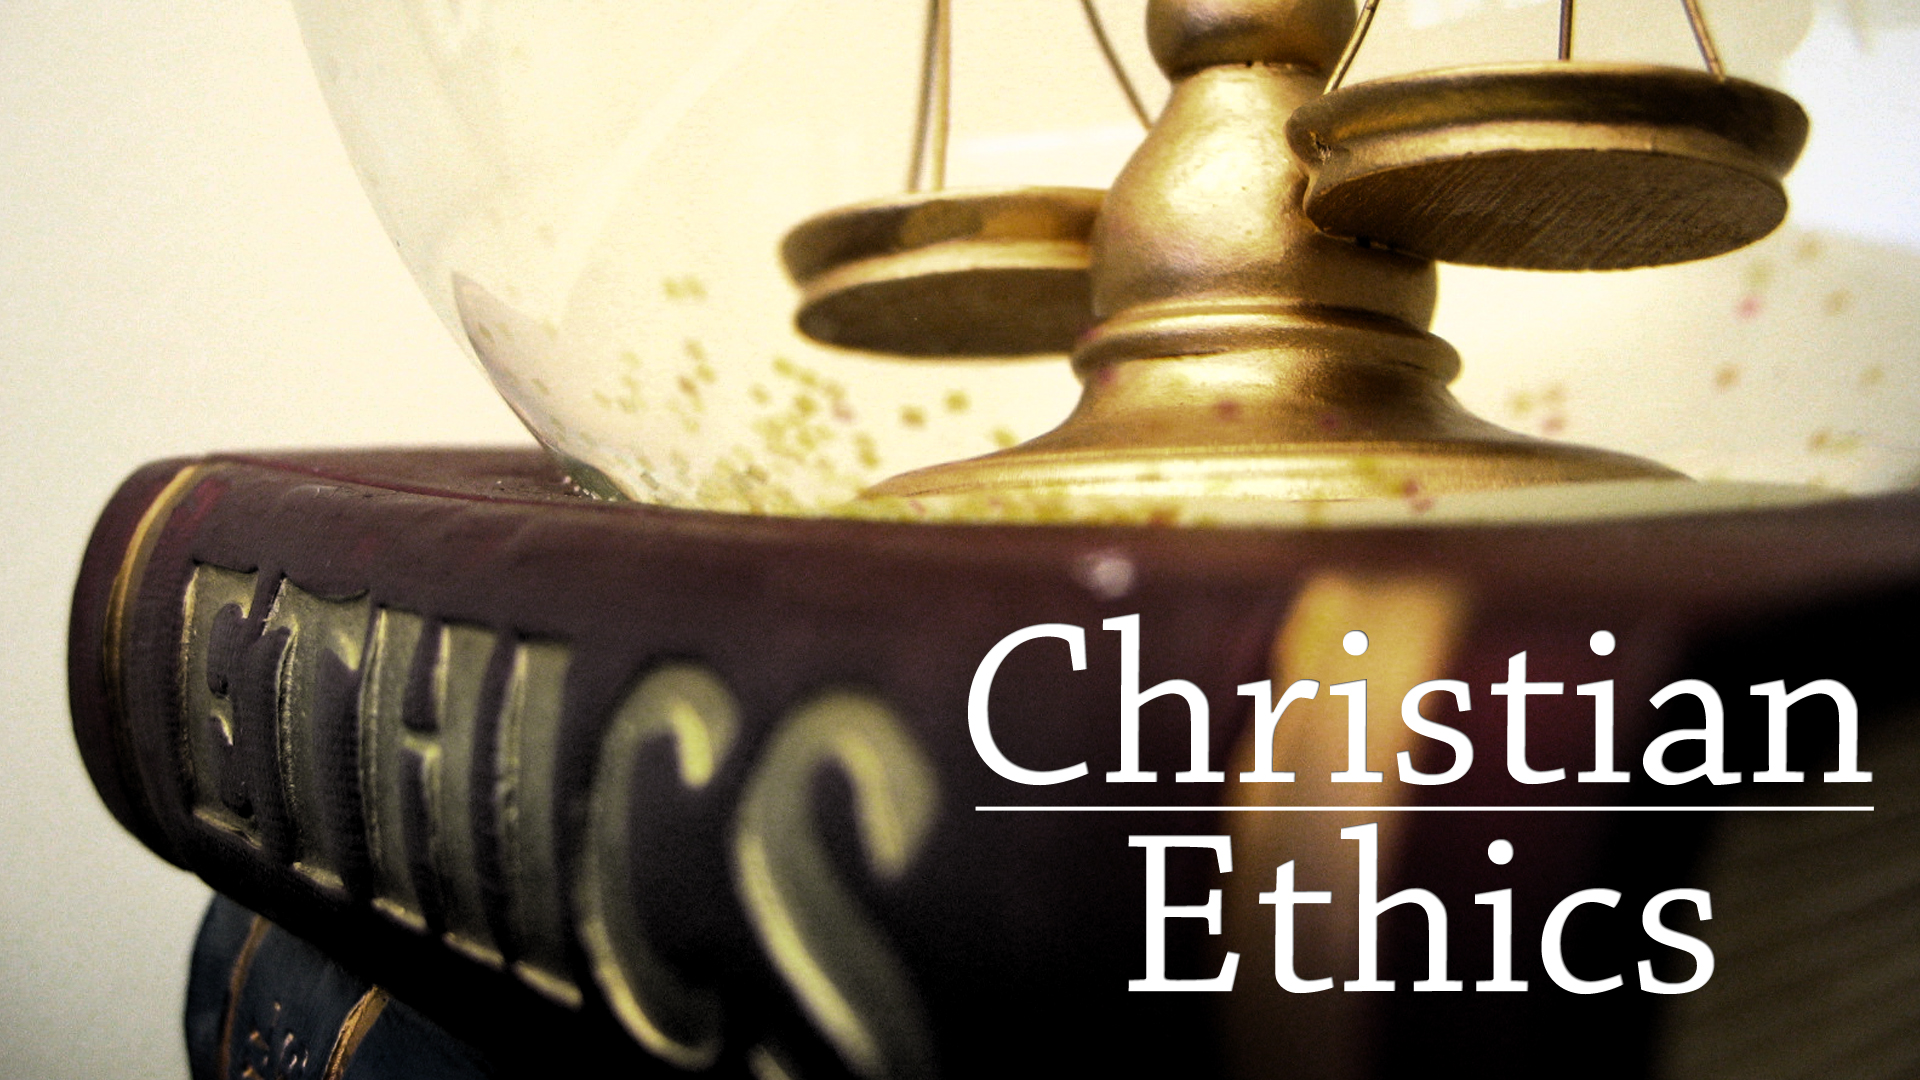 th511-christian-ethics-1920×1080